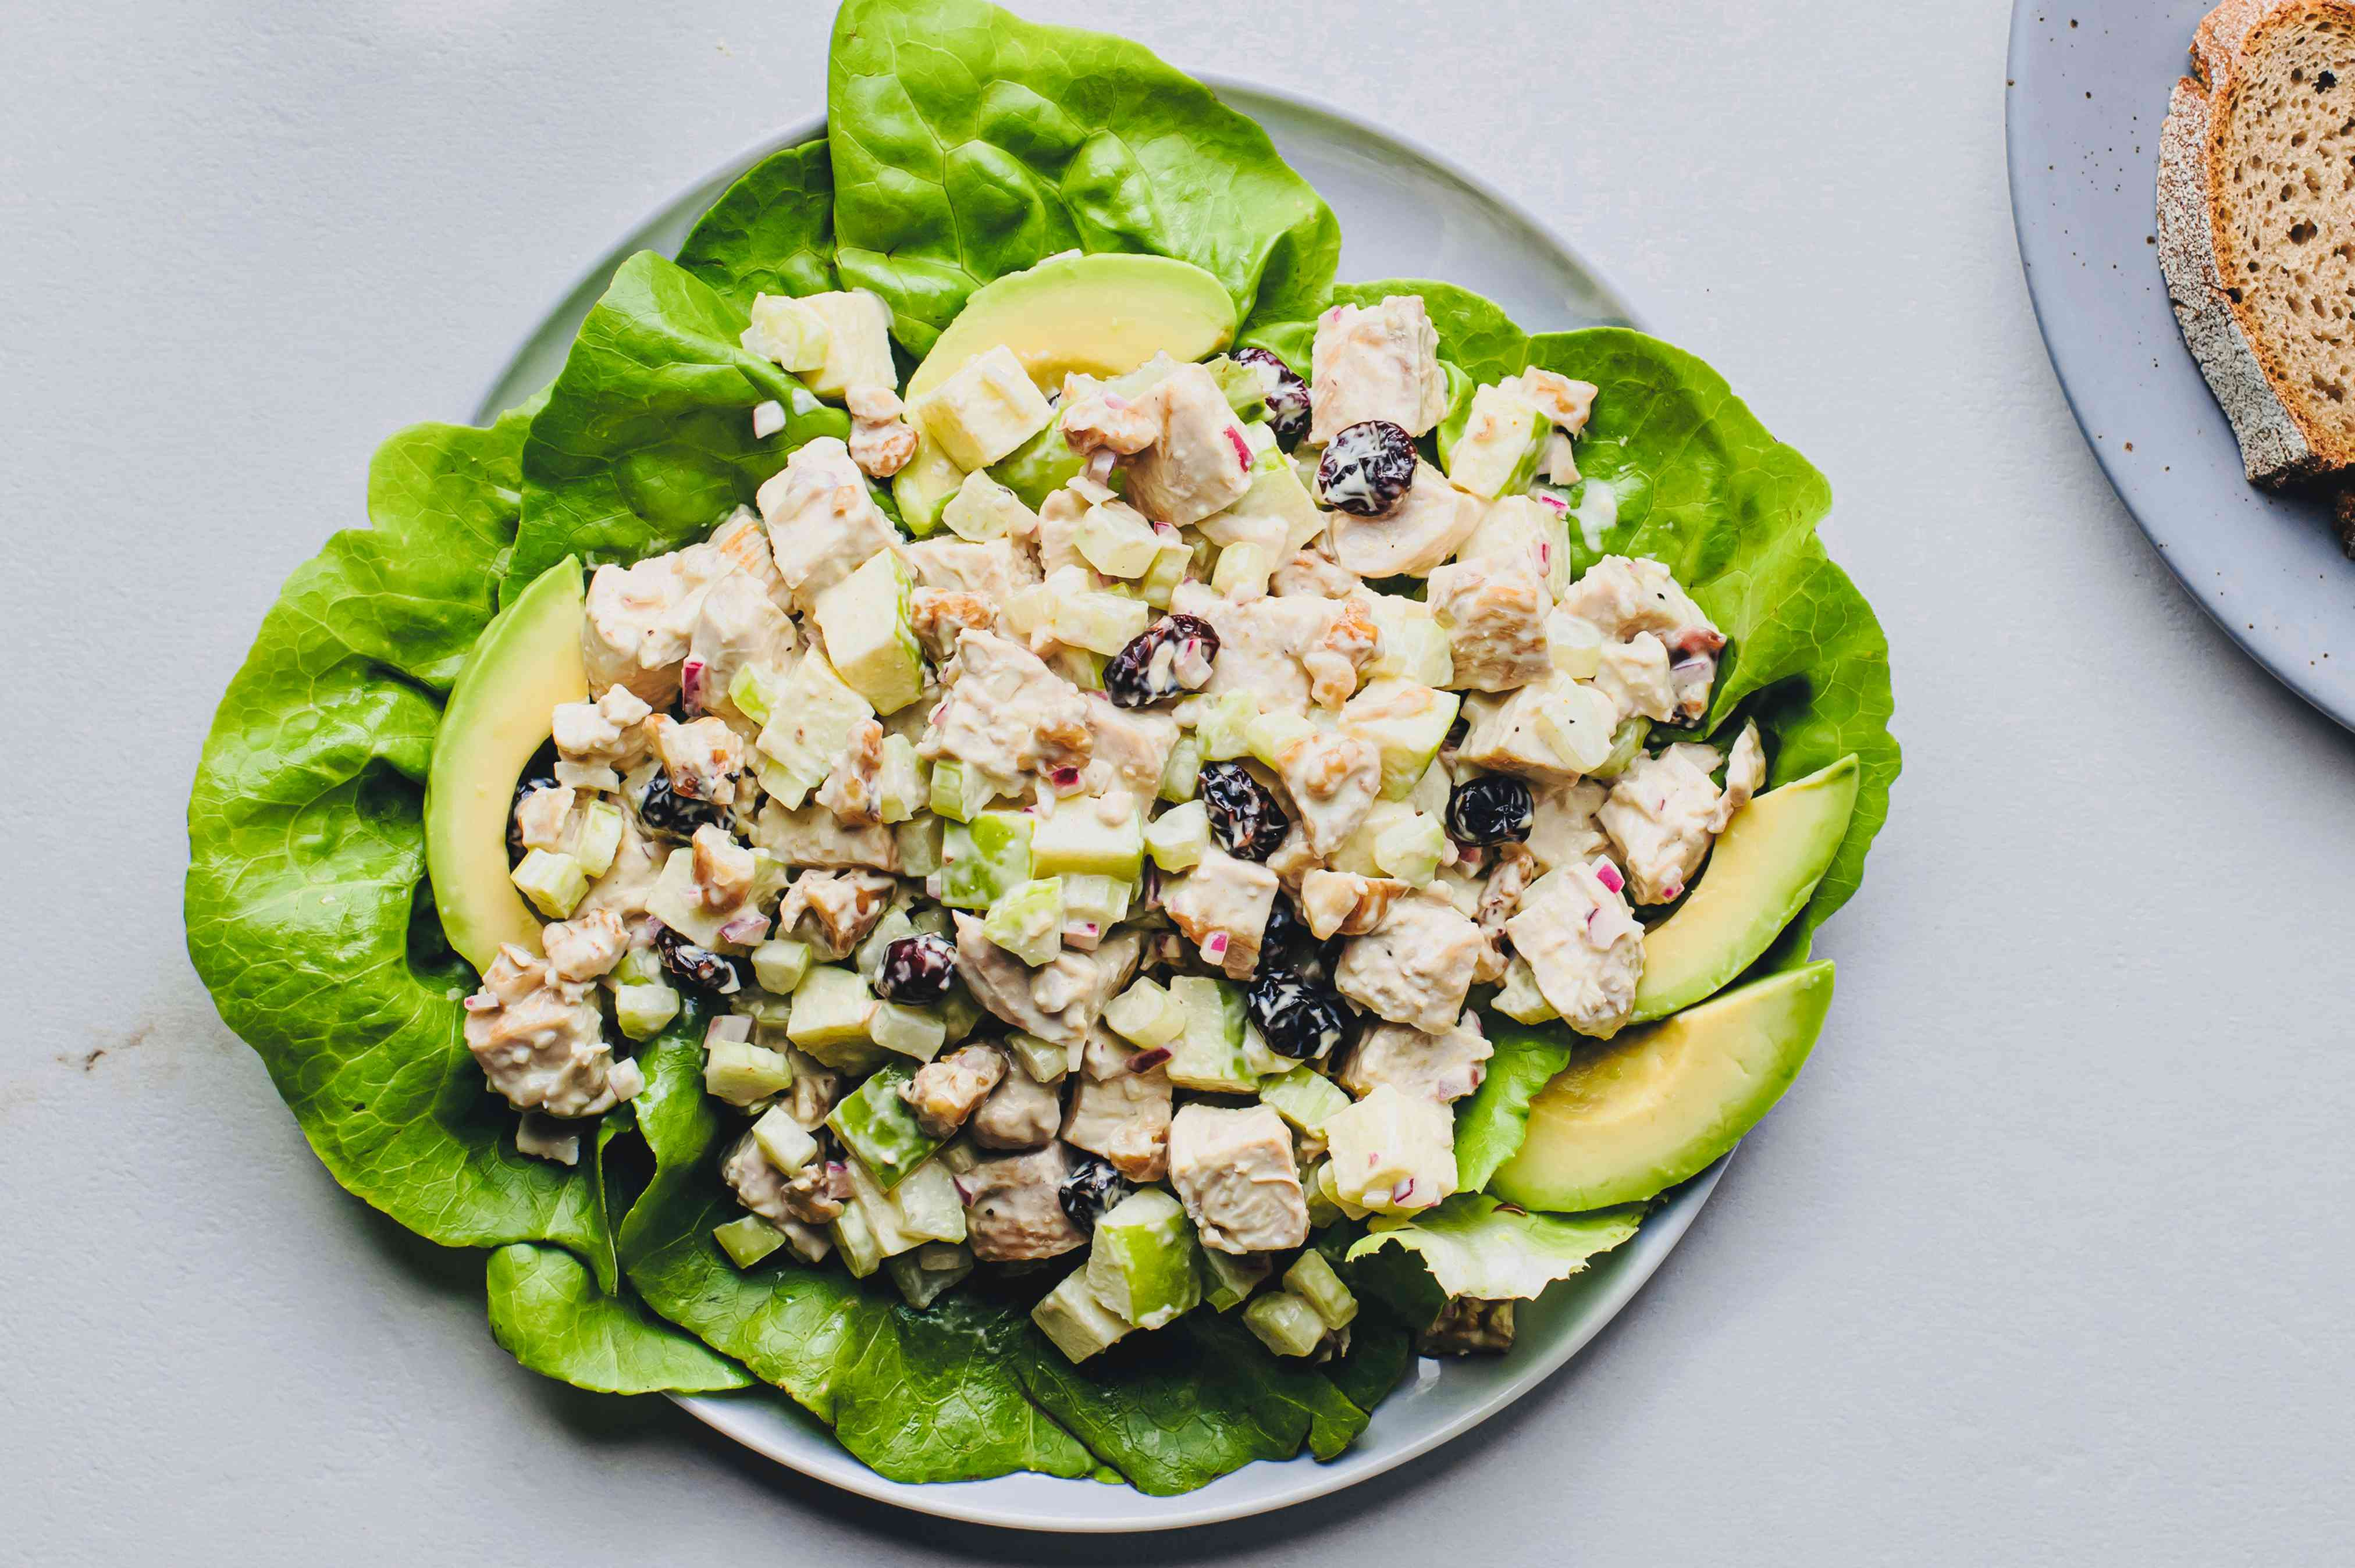 Chicken salad with apples and cranberries in a bowl, with lettuce and avocados